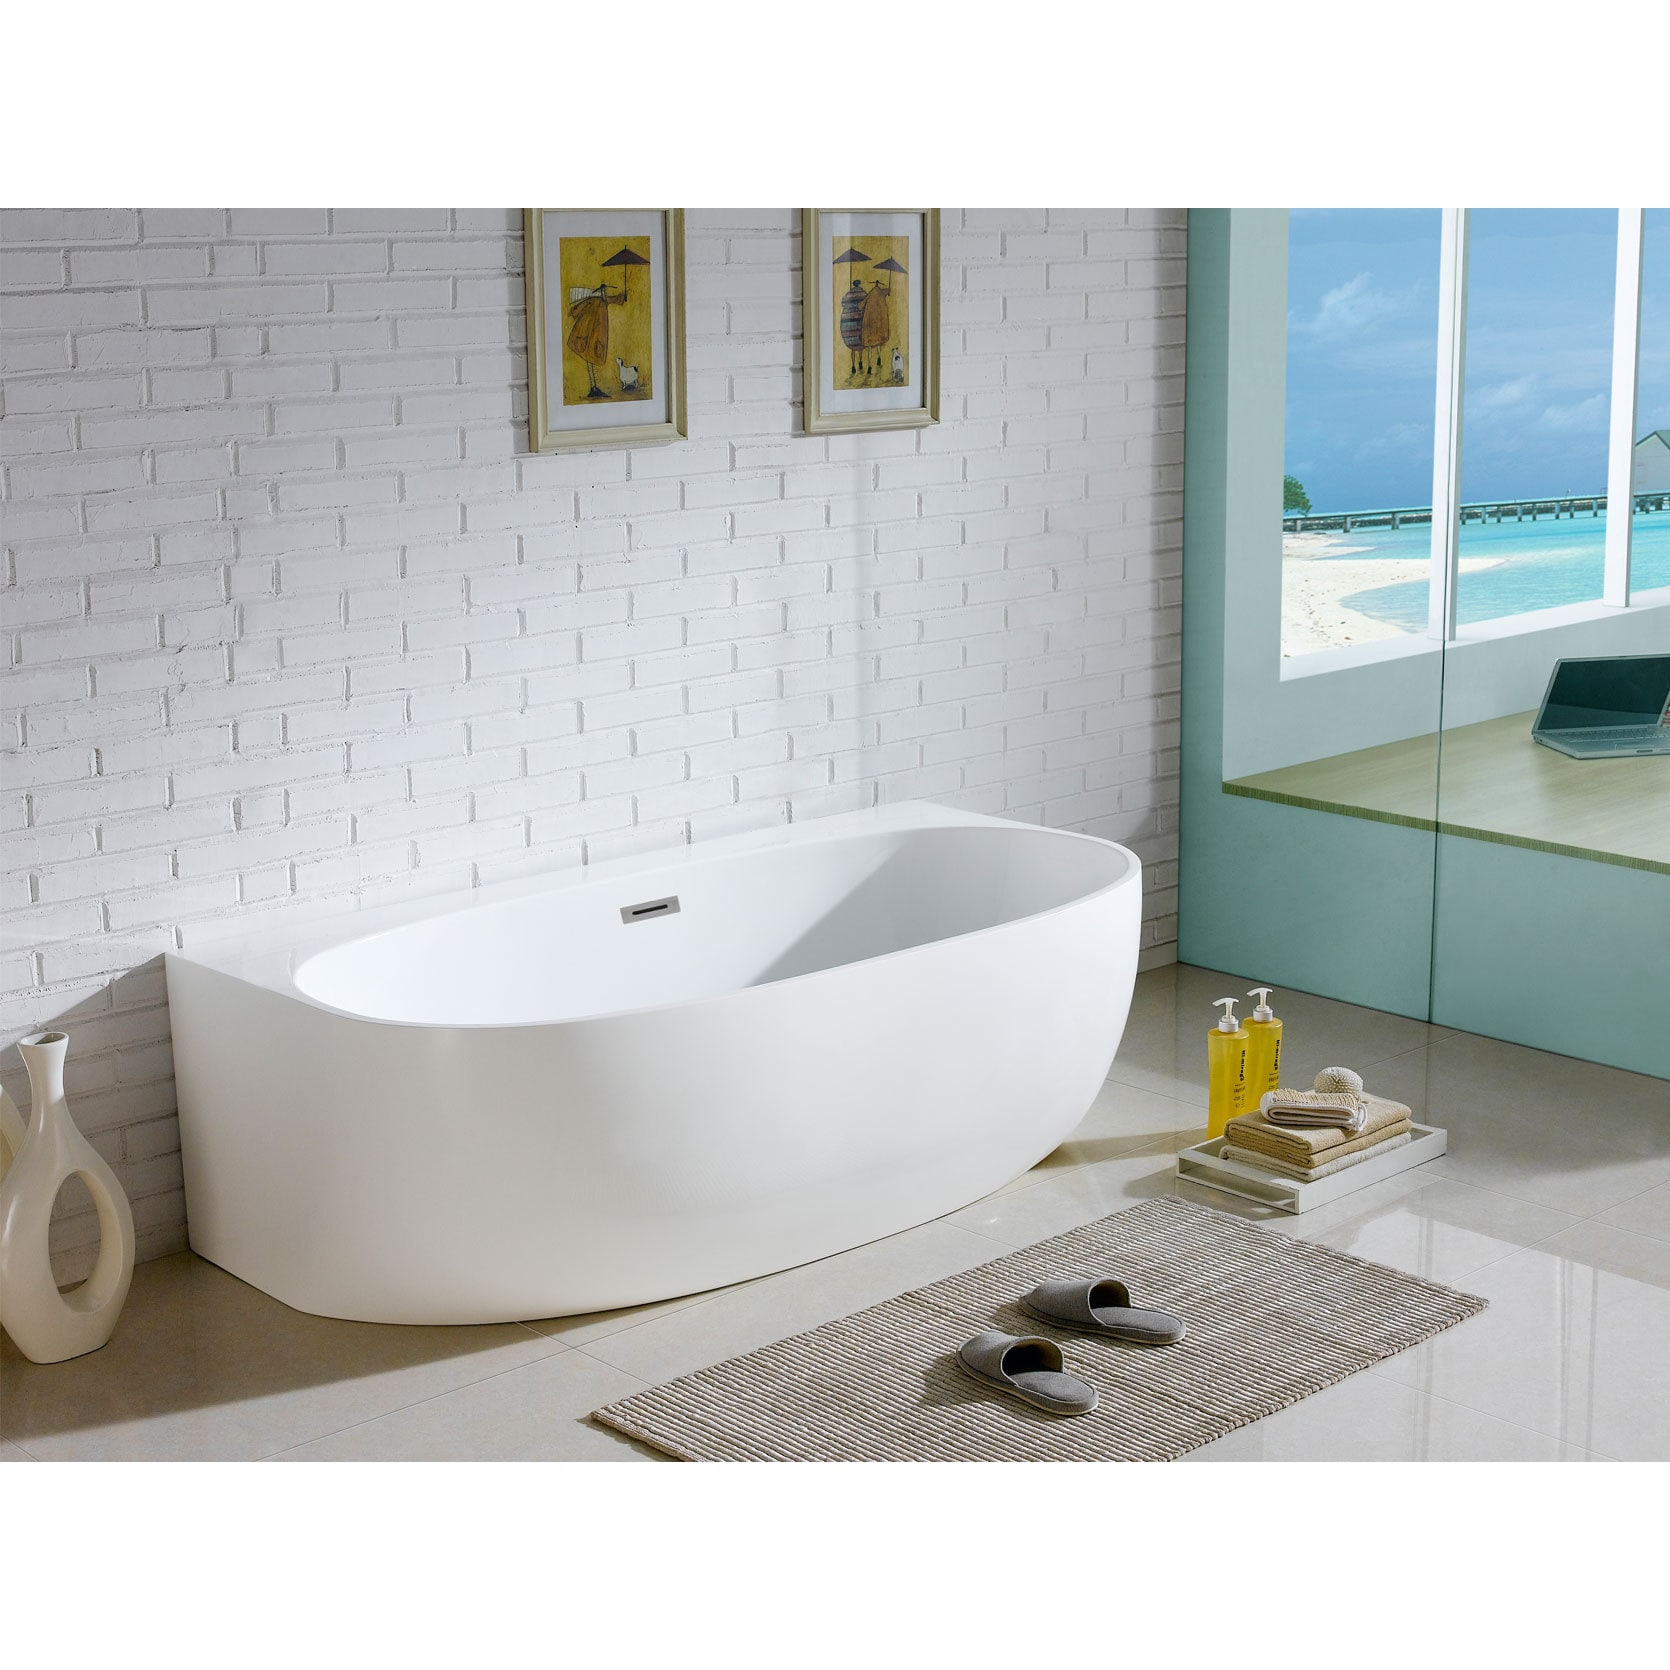 Monte 58 Inch X 33 Inch White Oval Soaking Bathtub   Free Shipping Today    Overstock   18569768